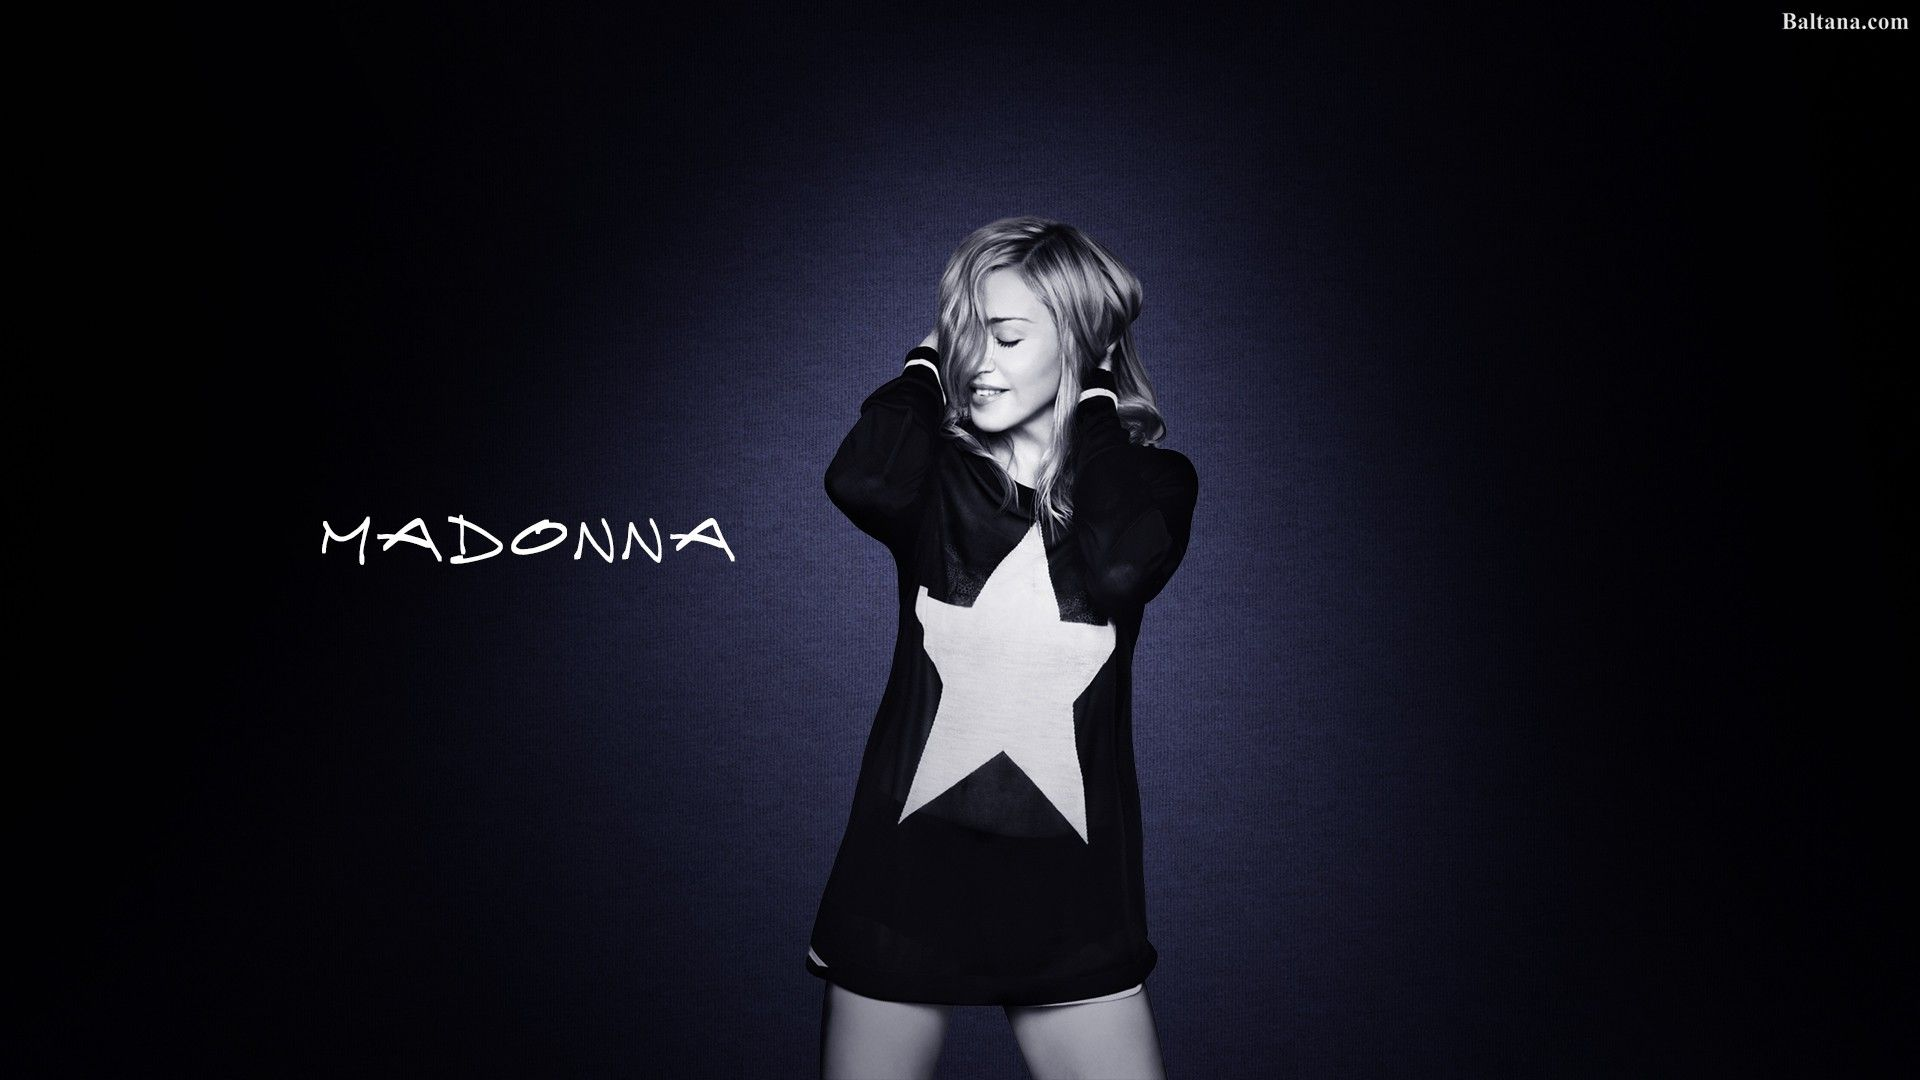 Madonna Desktop Wallpaper